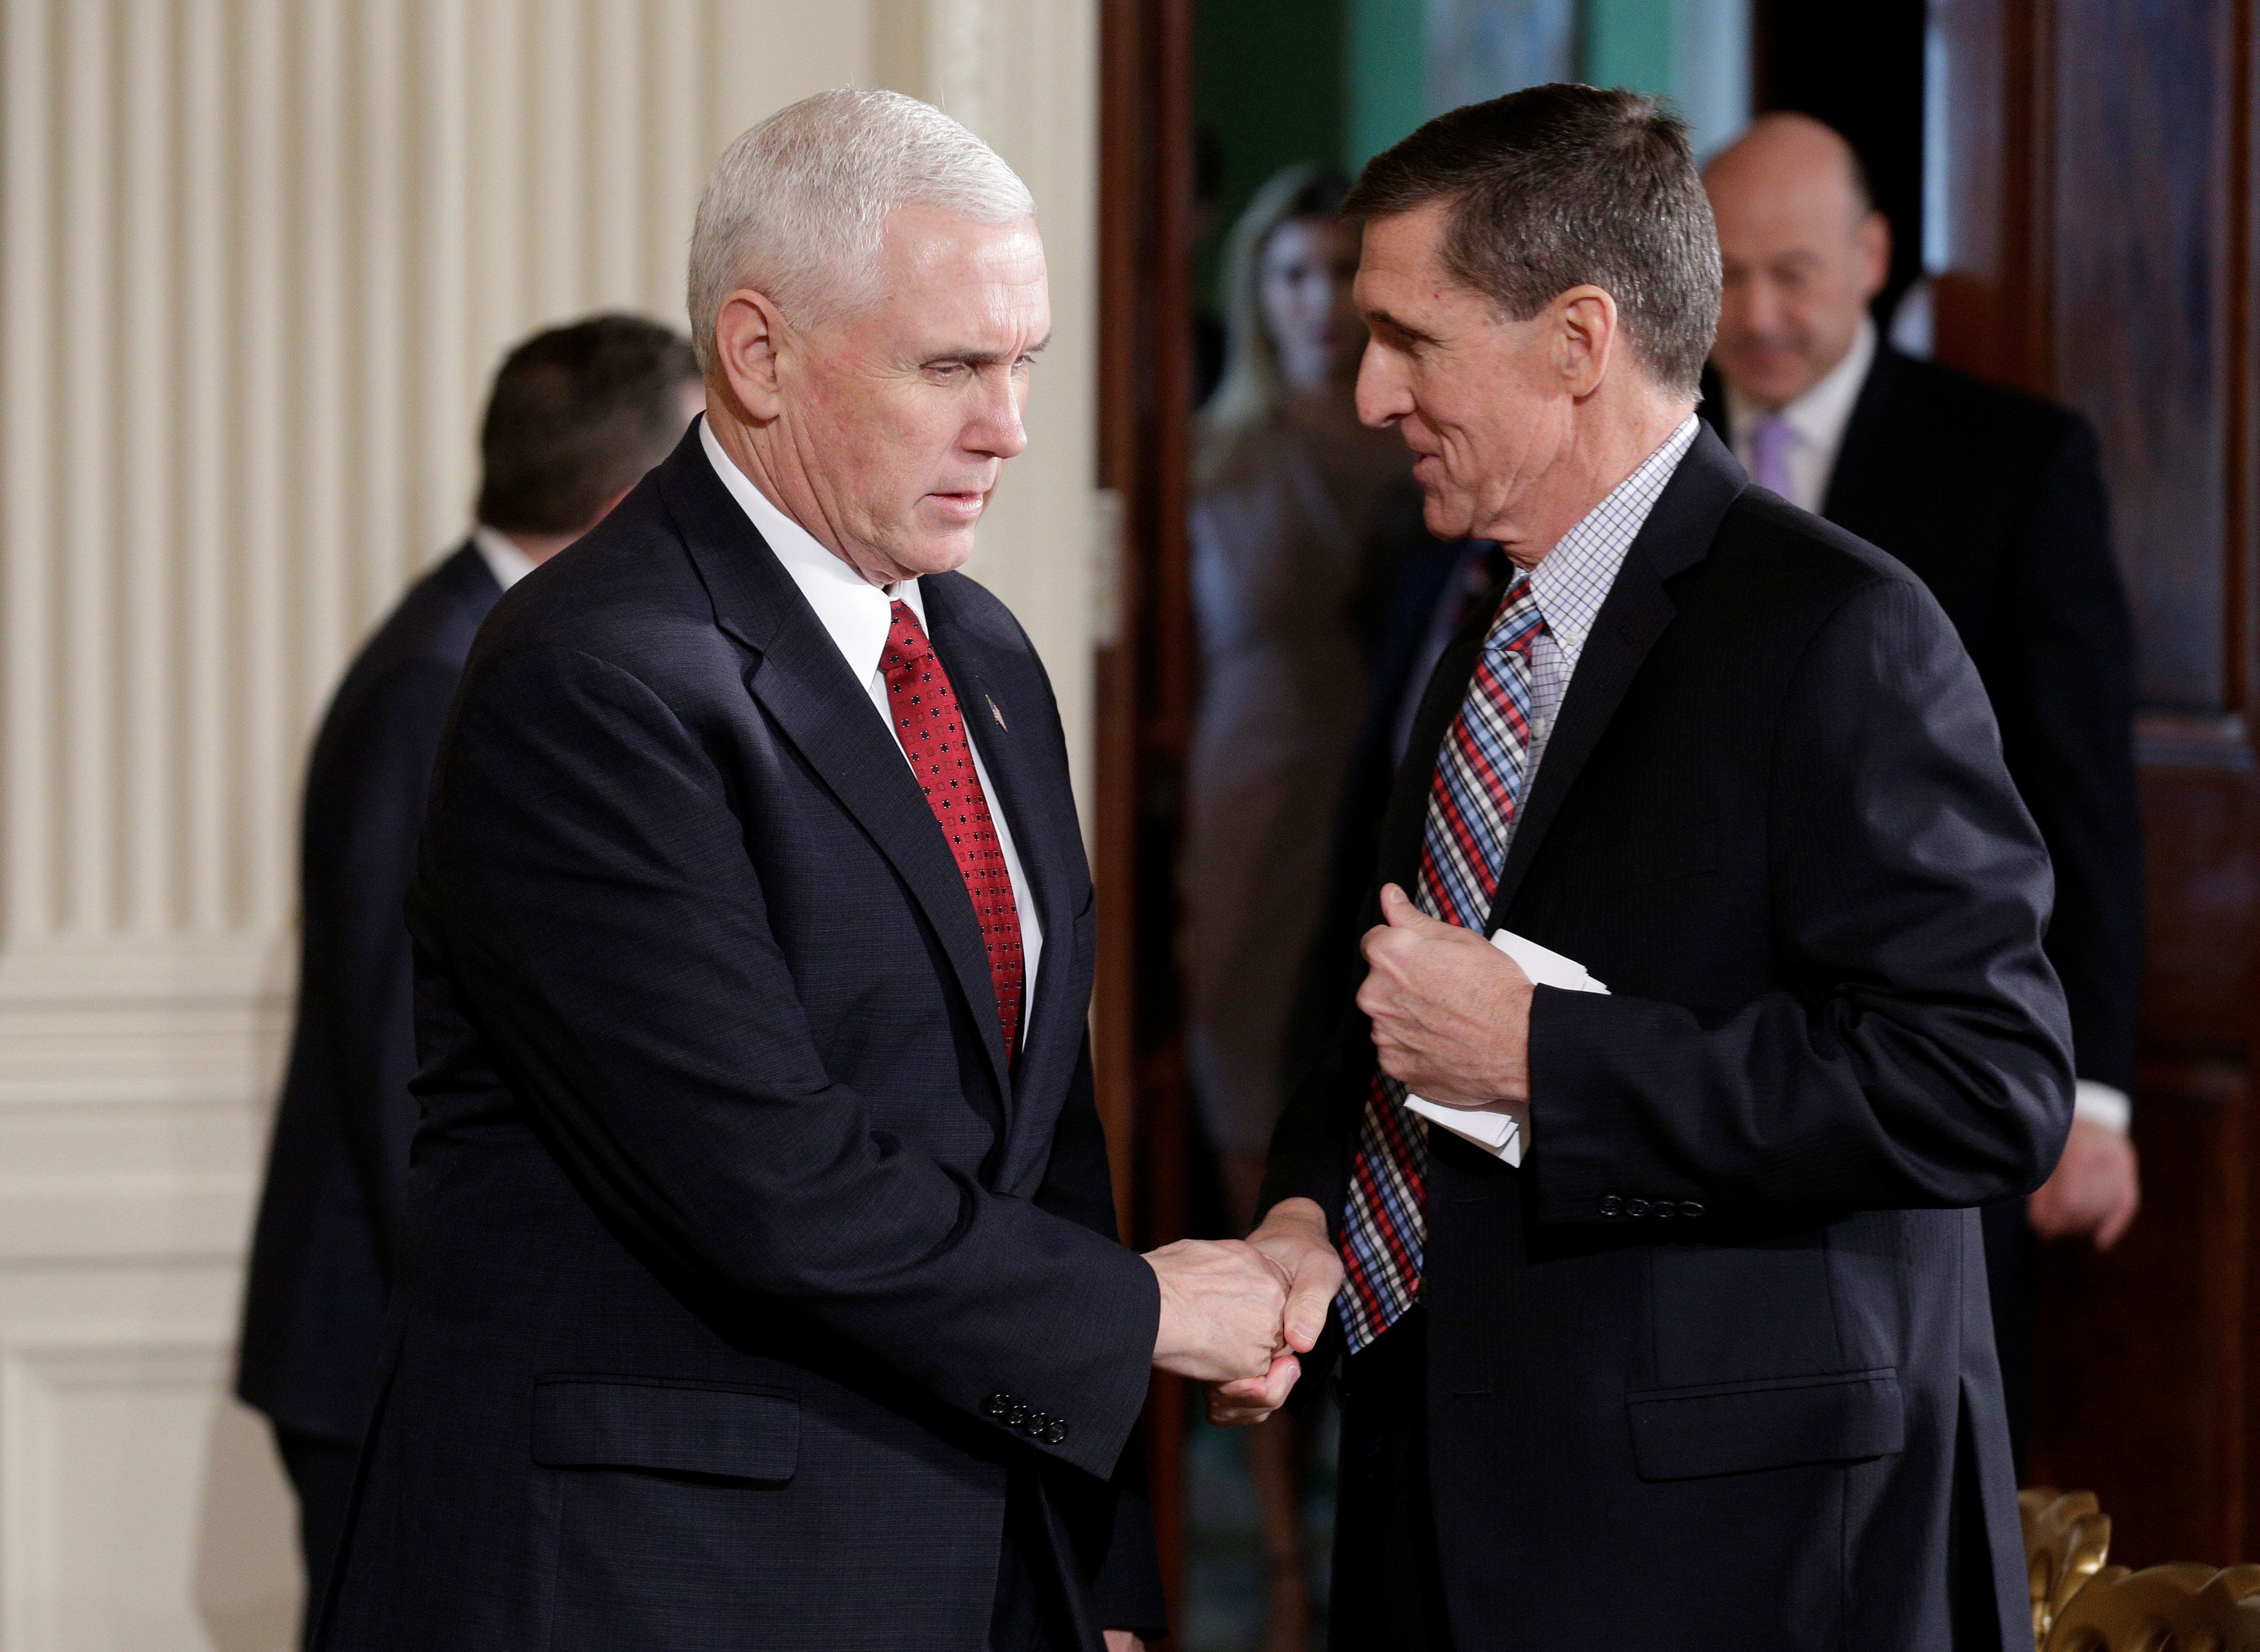 U.S. Vice President Mike Pence greets National Security Advisor Michael Flynn before Japanese Prime Minister Shinzo Abe and U.S. President Donald Trump arrive for their joint news conference at the White House in Washington, U.S., February 10, 2017.     REUTERS/Joshua Roberts